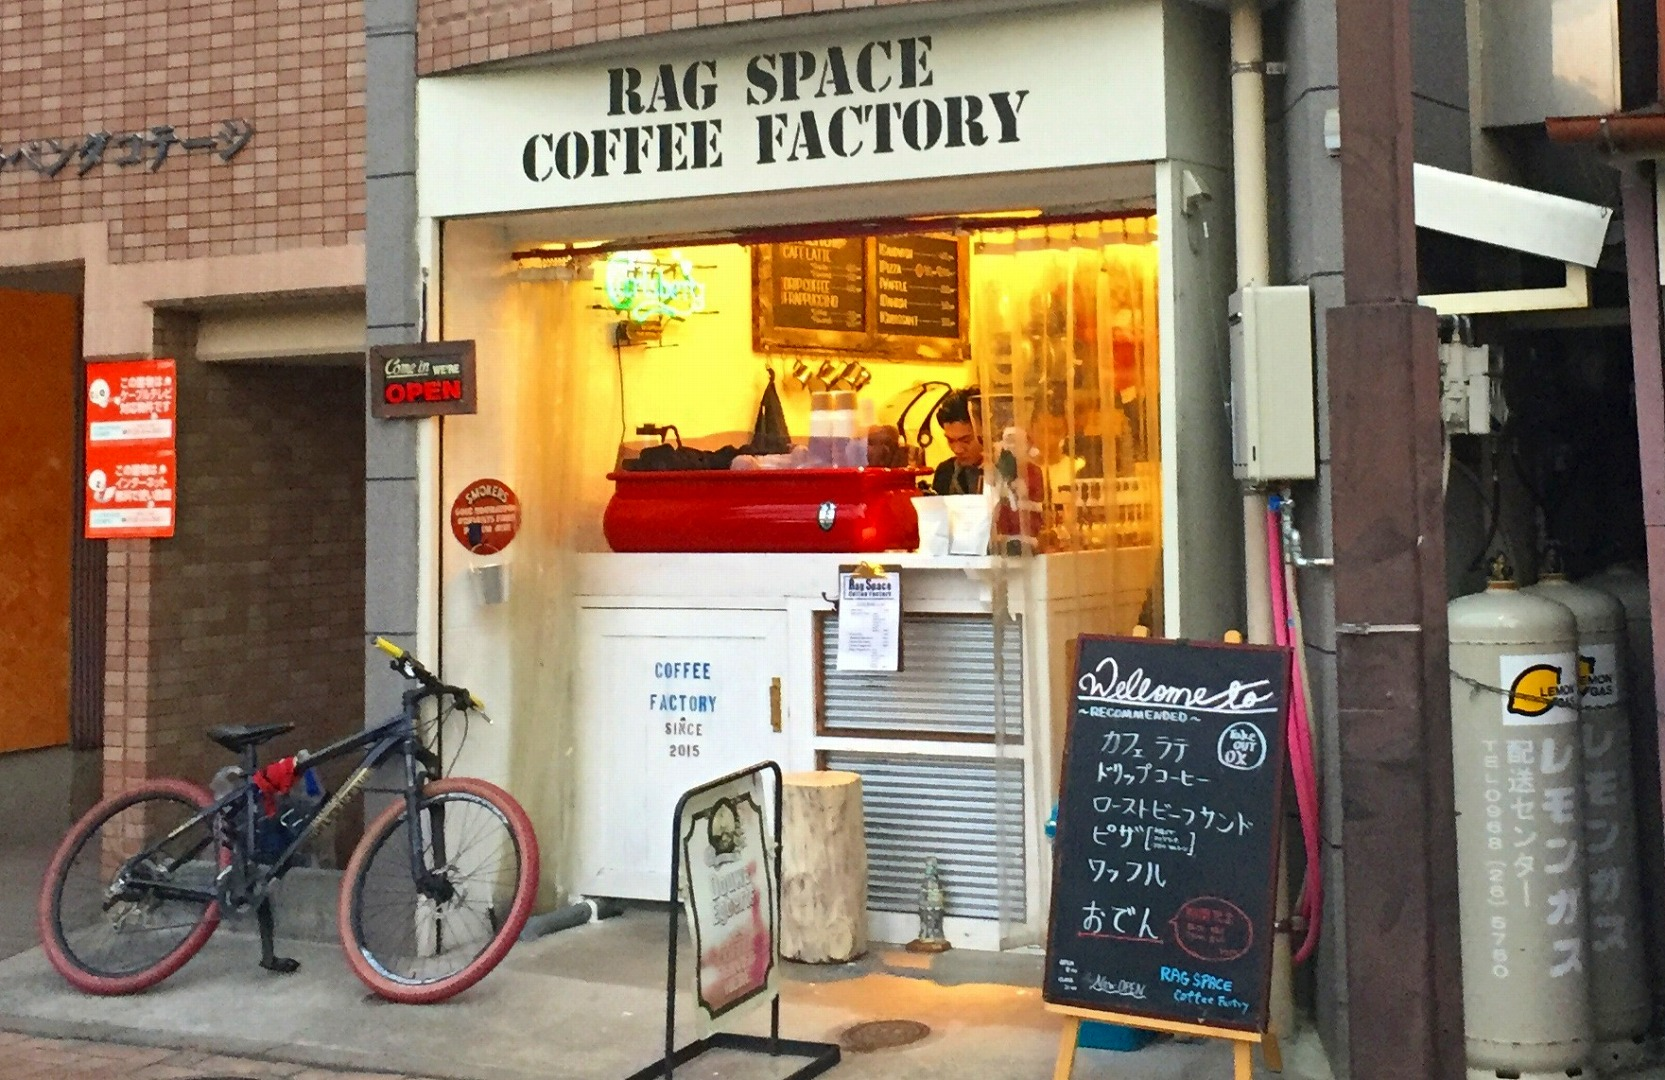 Rag Space Coffee Factory